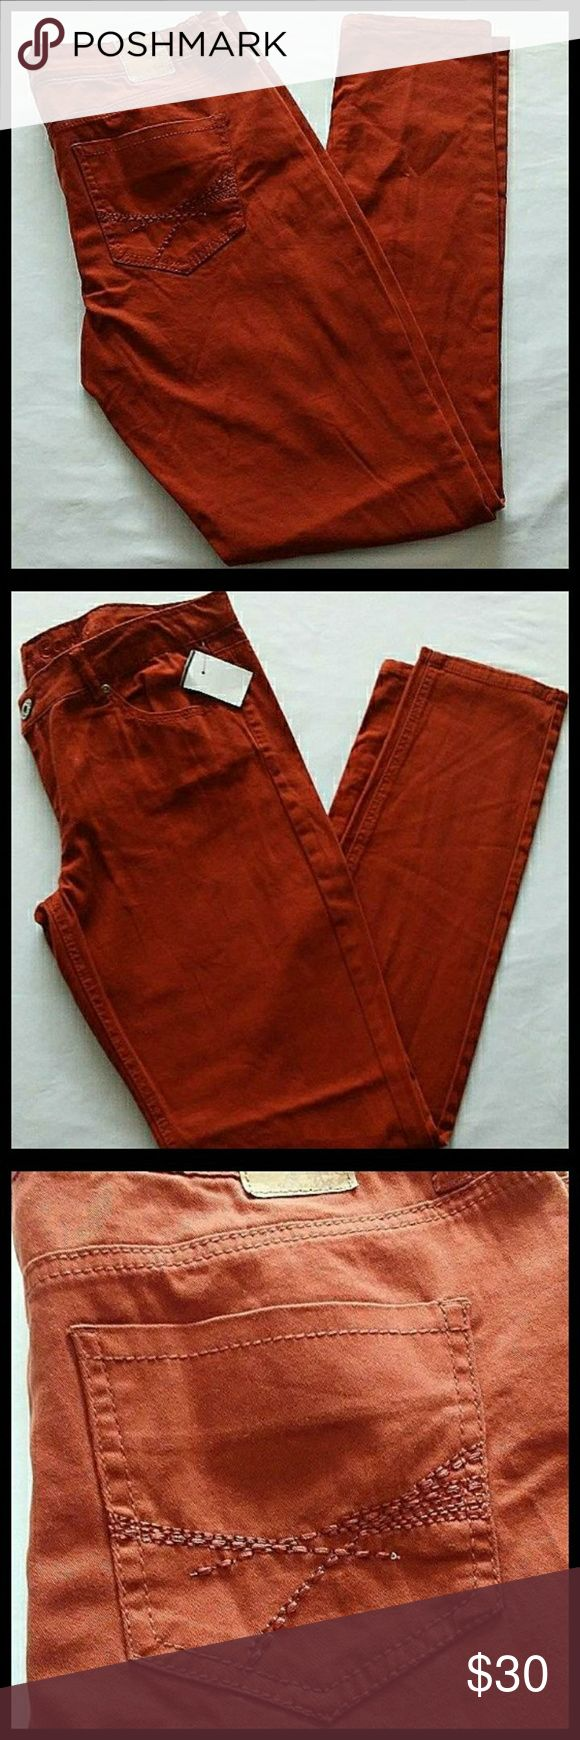 """New Red Camel Jeans * New without tags never worn * Belt loops * Button and zipper front closure * Front and back pockets * Design on pockets * Burnt orange color * Waist 34.5"""" * Inseam 31"""" Red Camel Jeans"""